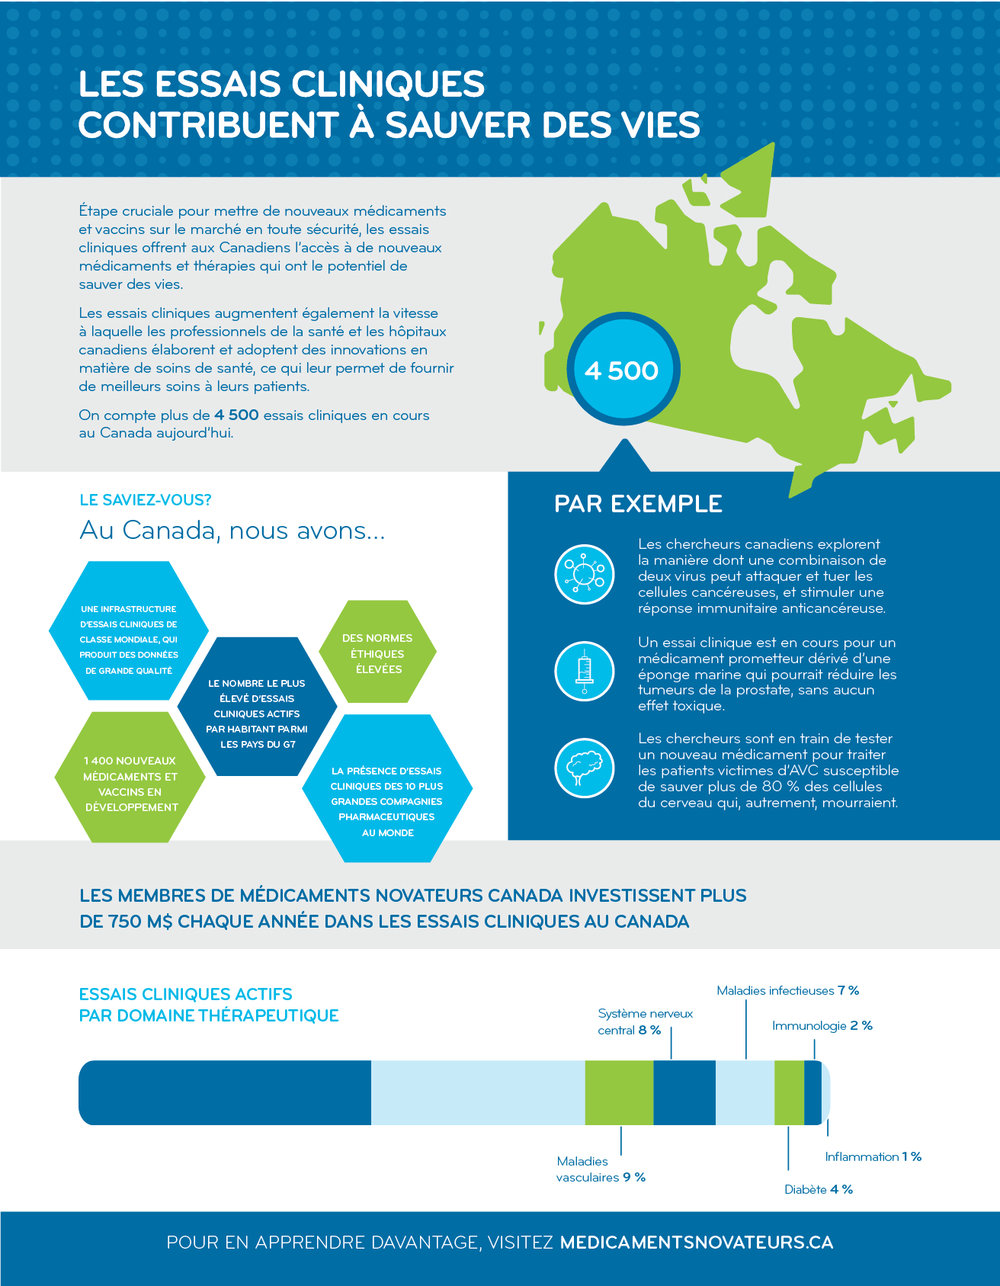 http://innovativemedicines.ca/fr/resources/infographics/